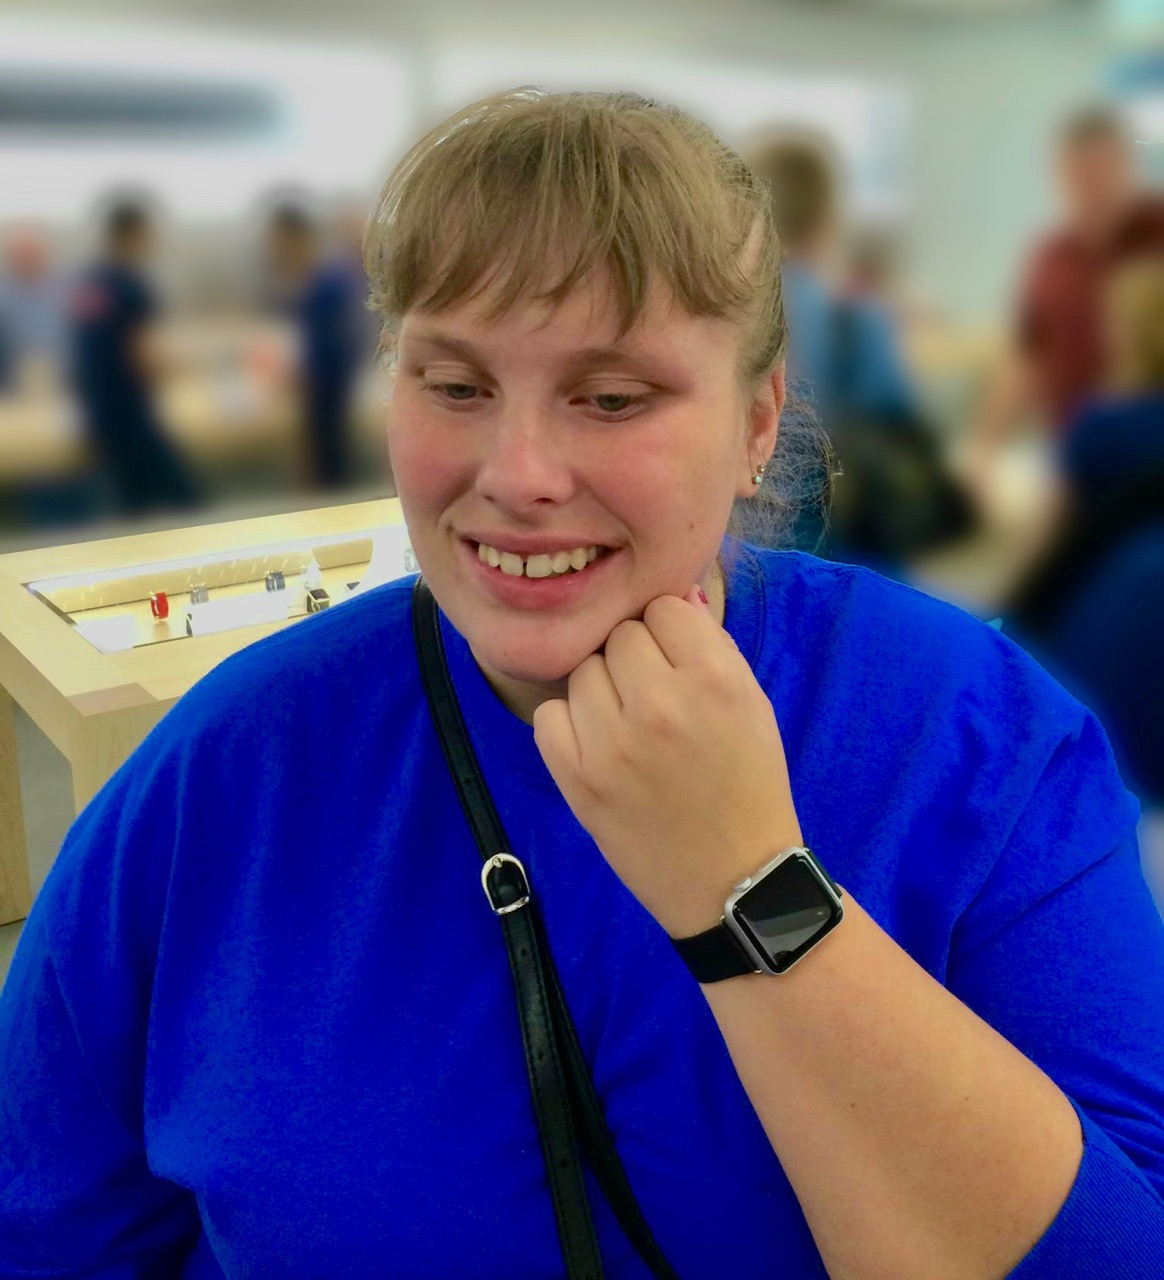 Grinning, Megan shows the Apple watch on her wrist to the camera